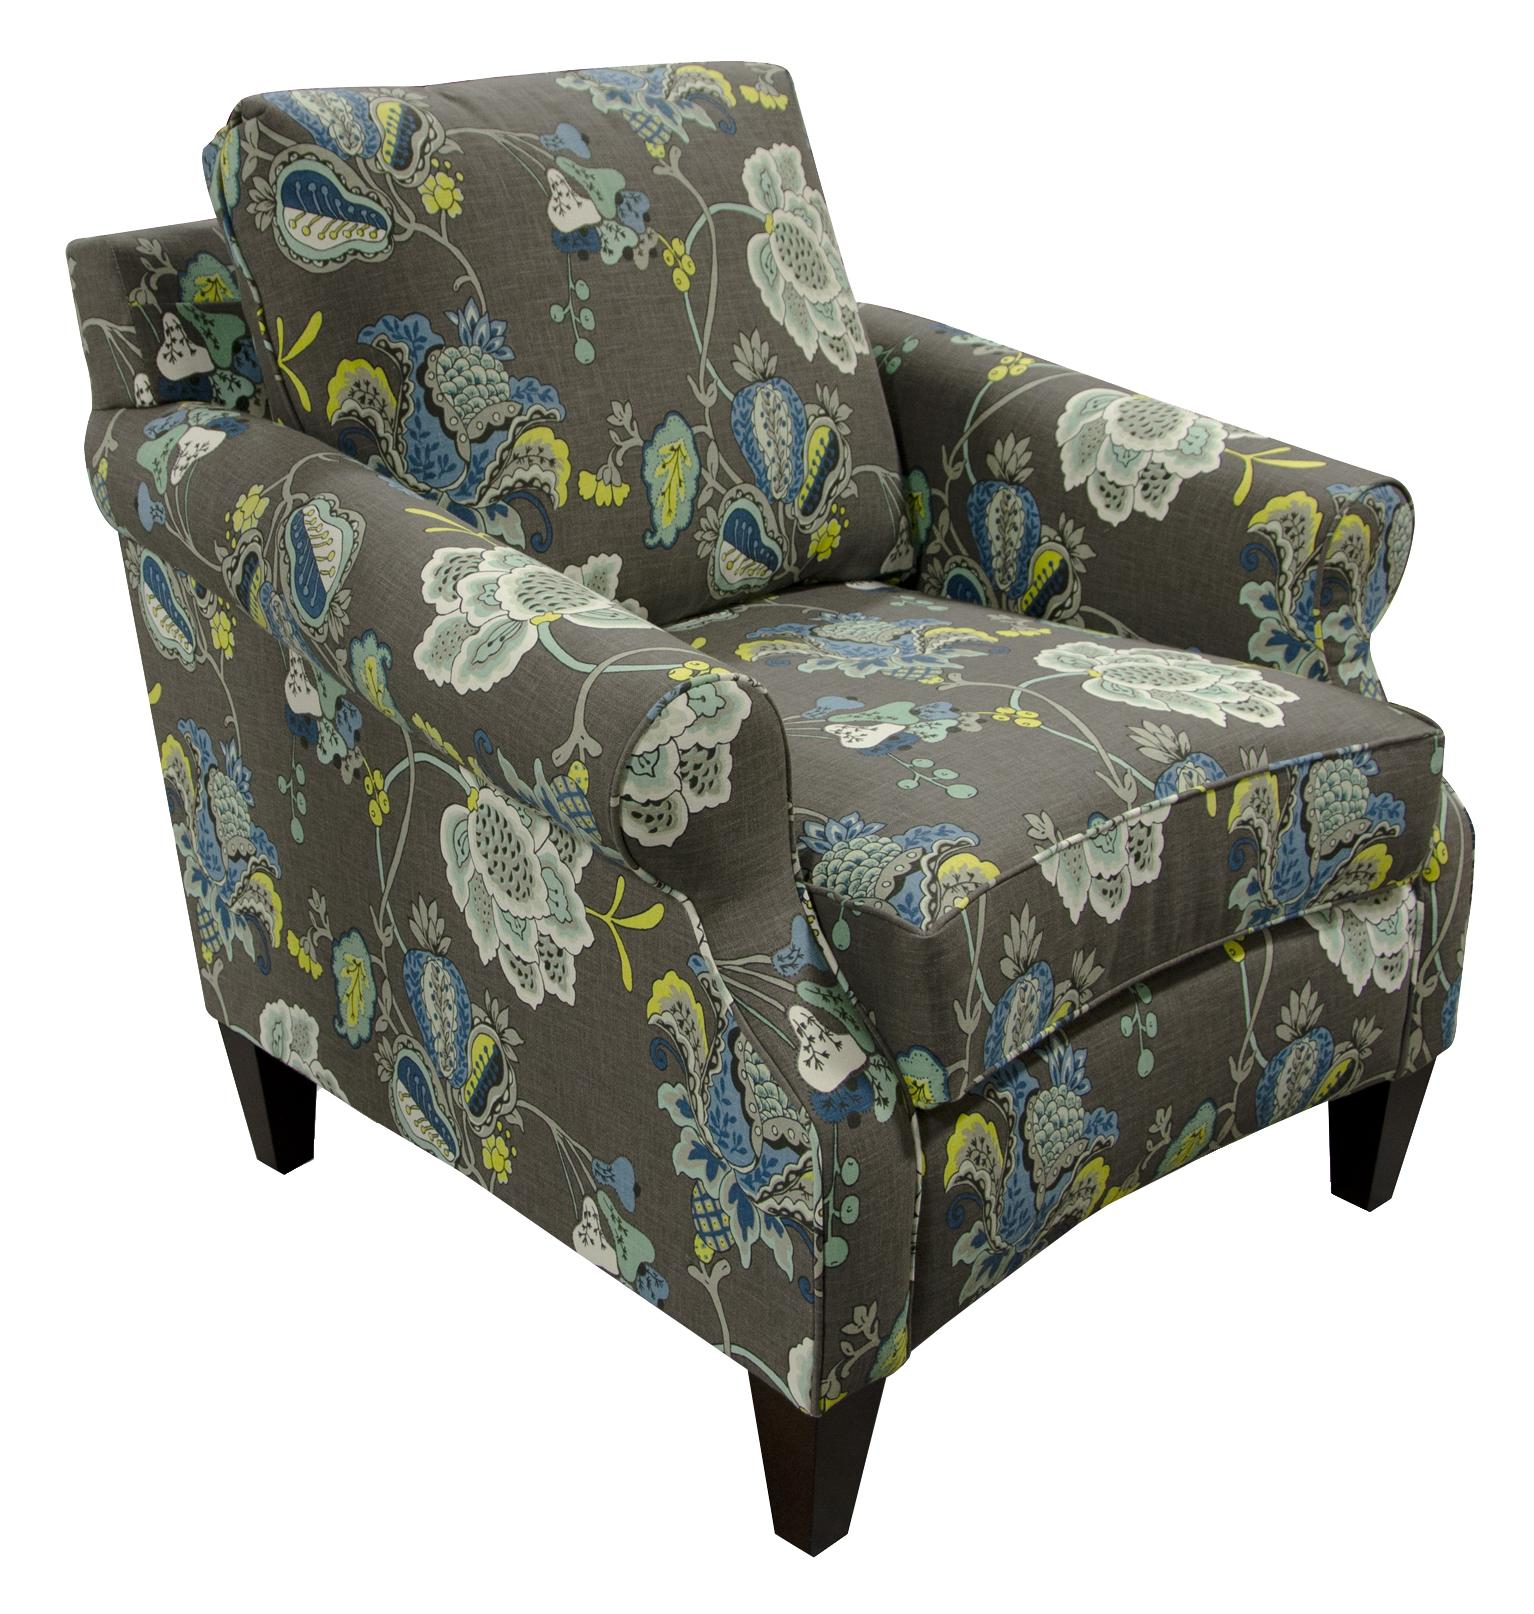 England Duke Living Room Arm Chair - Item Number: 3134